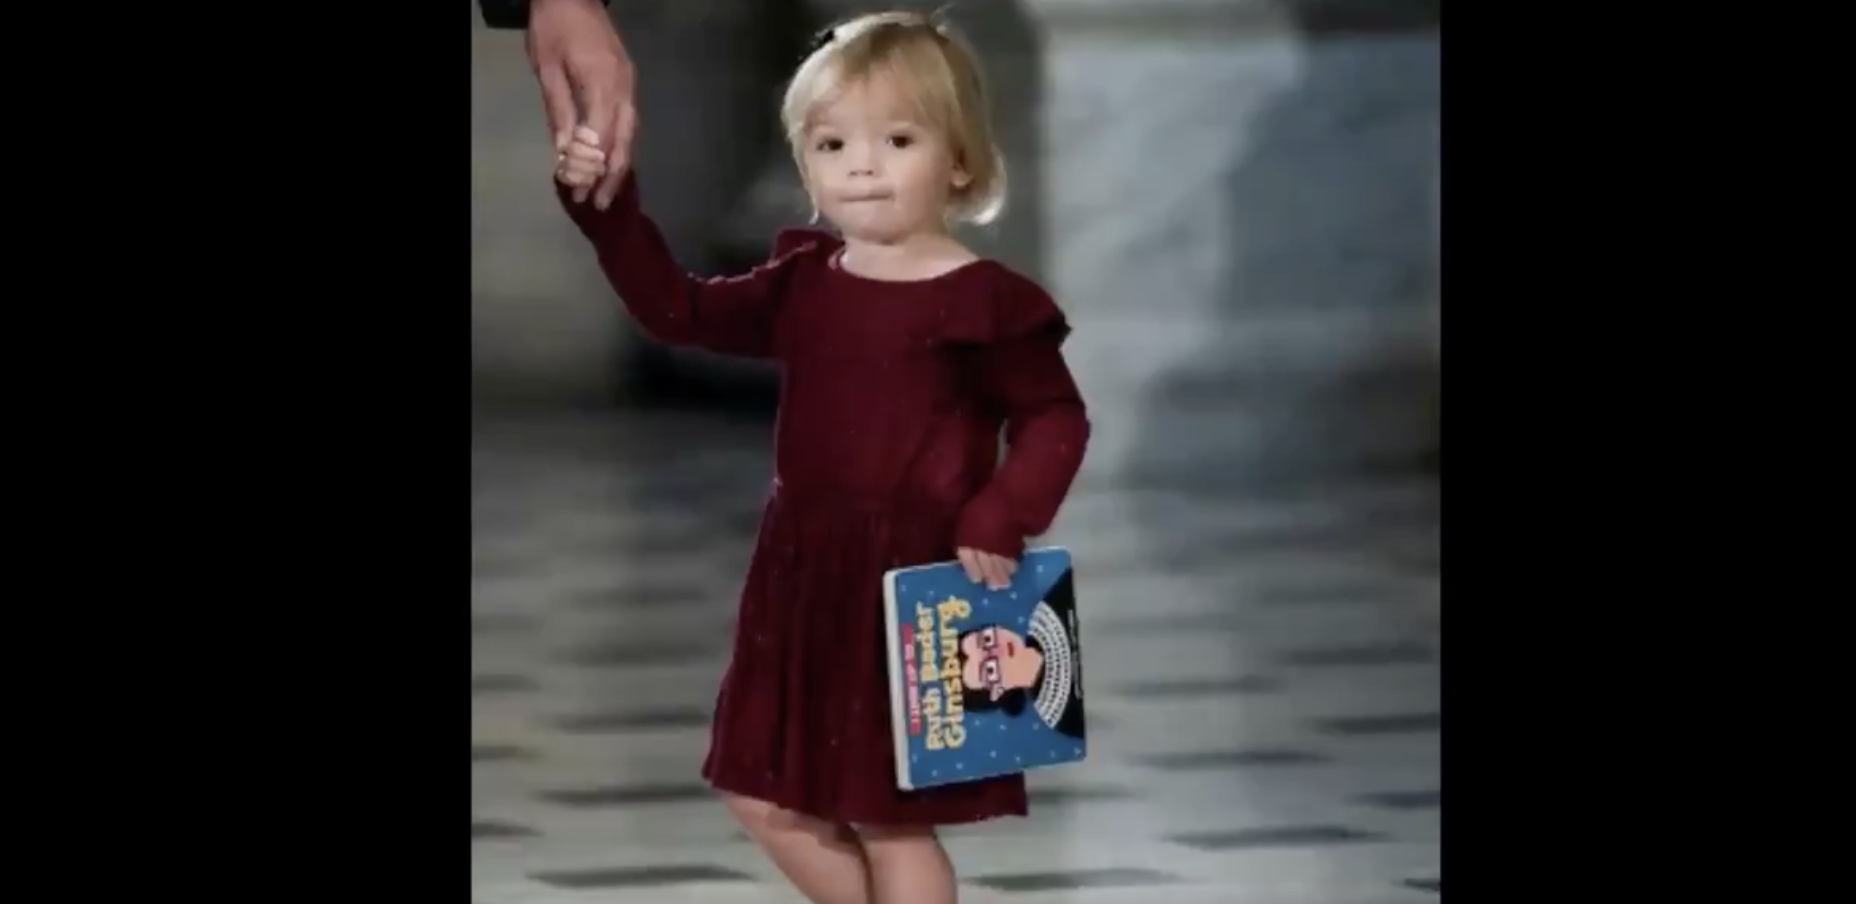 Screen-Shot-2020-10-30-at-11.36.50-AM 'The Lincoln Project' Delivers Friday Gut-Punch To Trump With New Video Child Abuse Civil Rights Featured Politics Top Stories